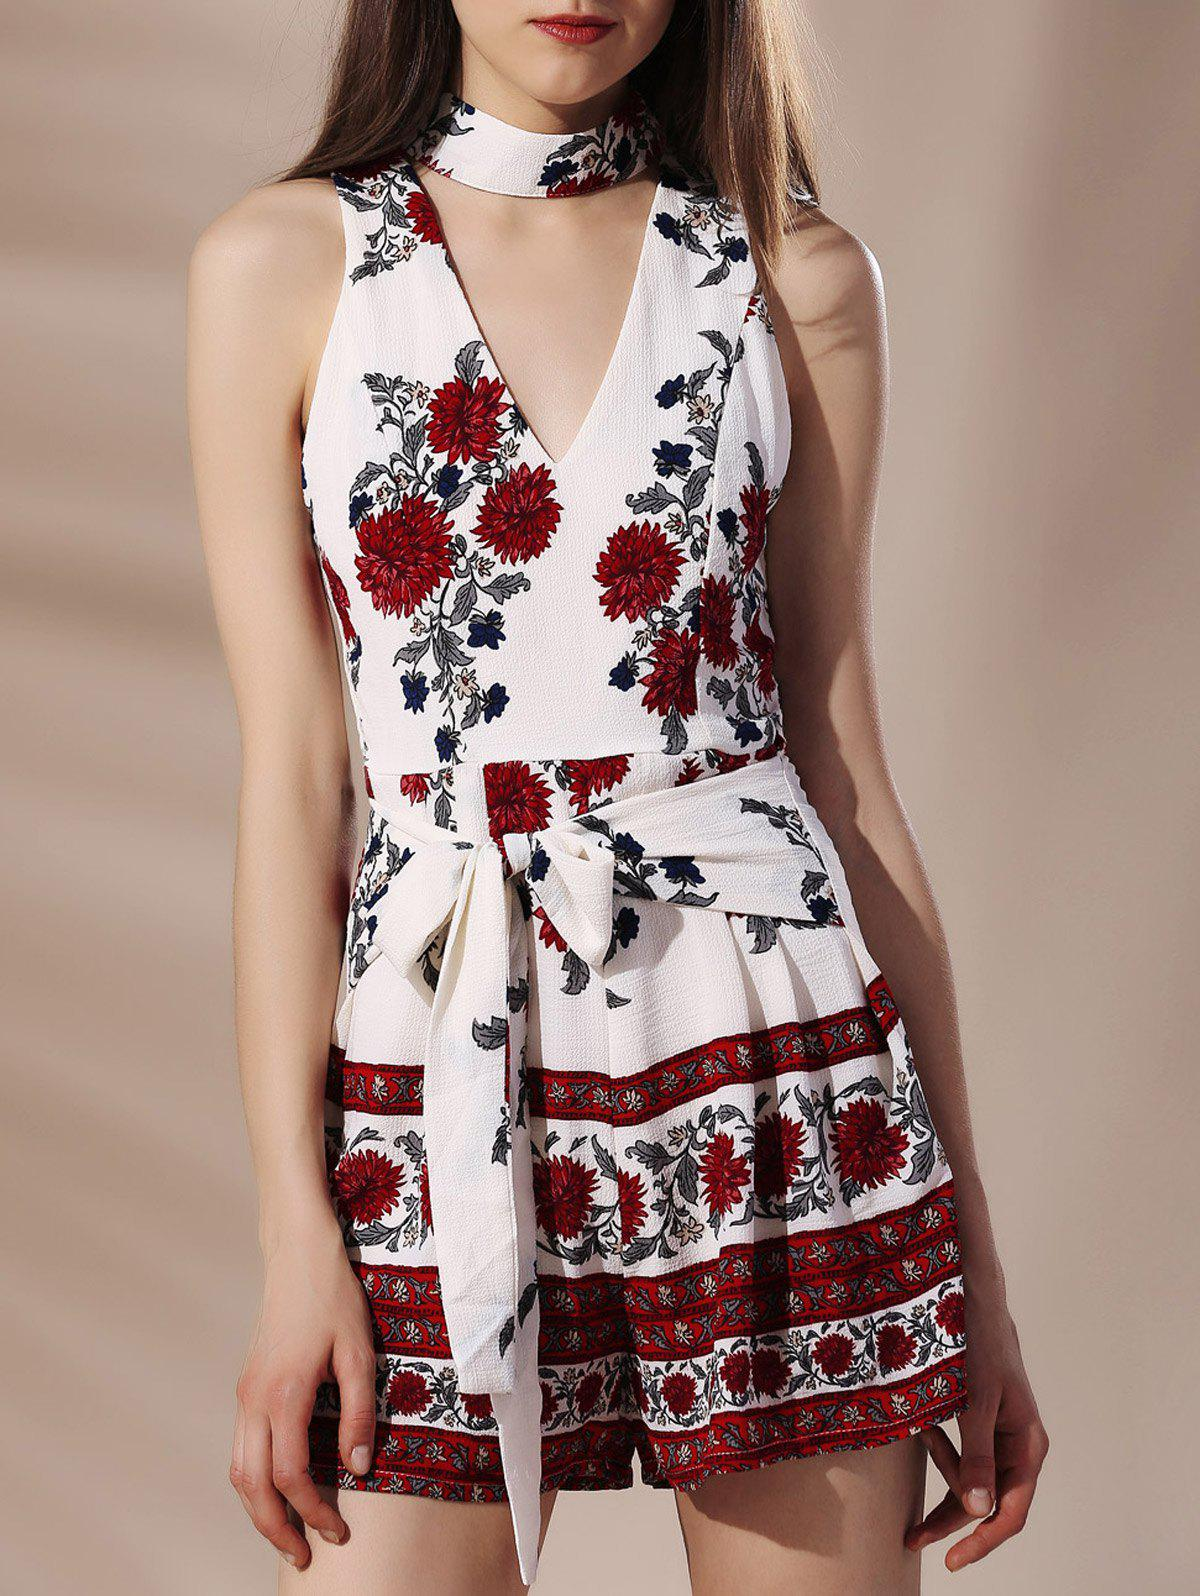 Stylish Flower Print Stand Collar Self Tie Cut Out Sleeveless Women's Romper - RED/WHITE S